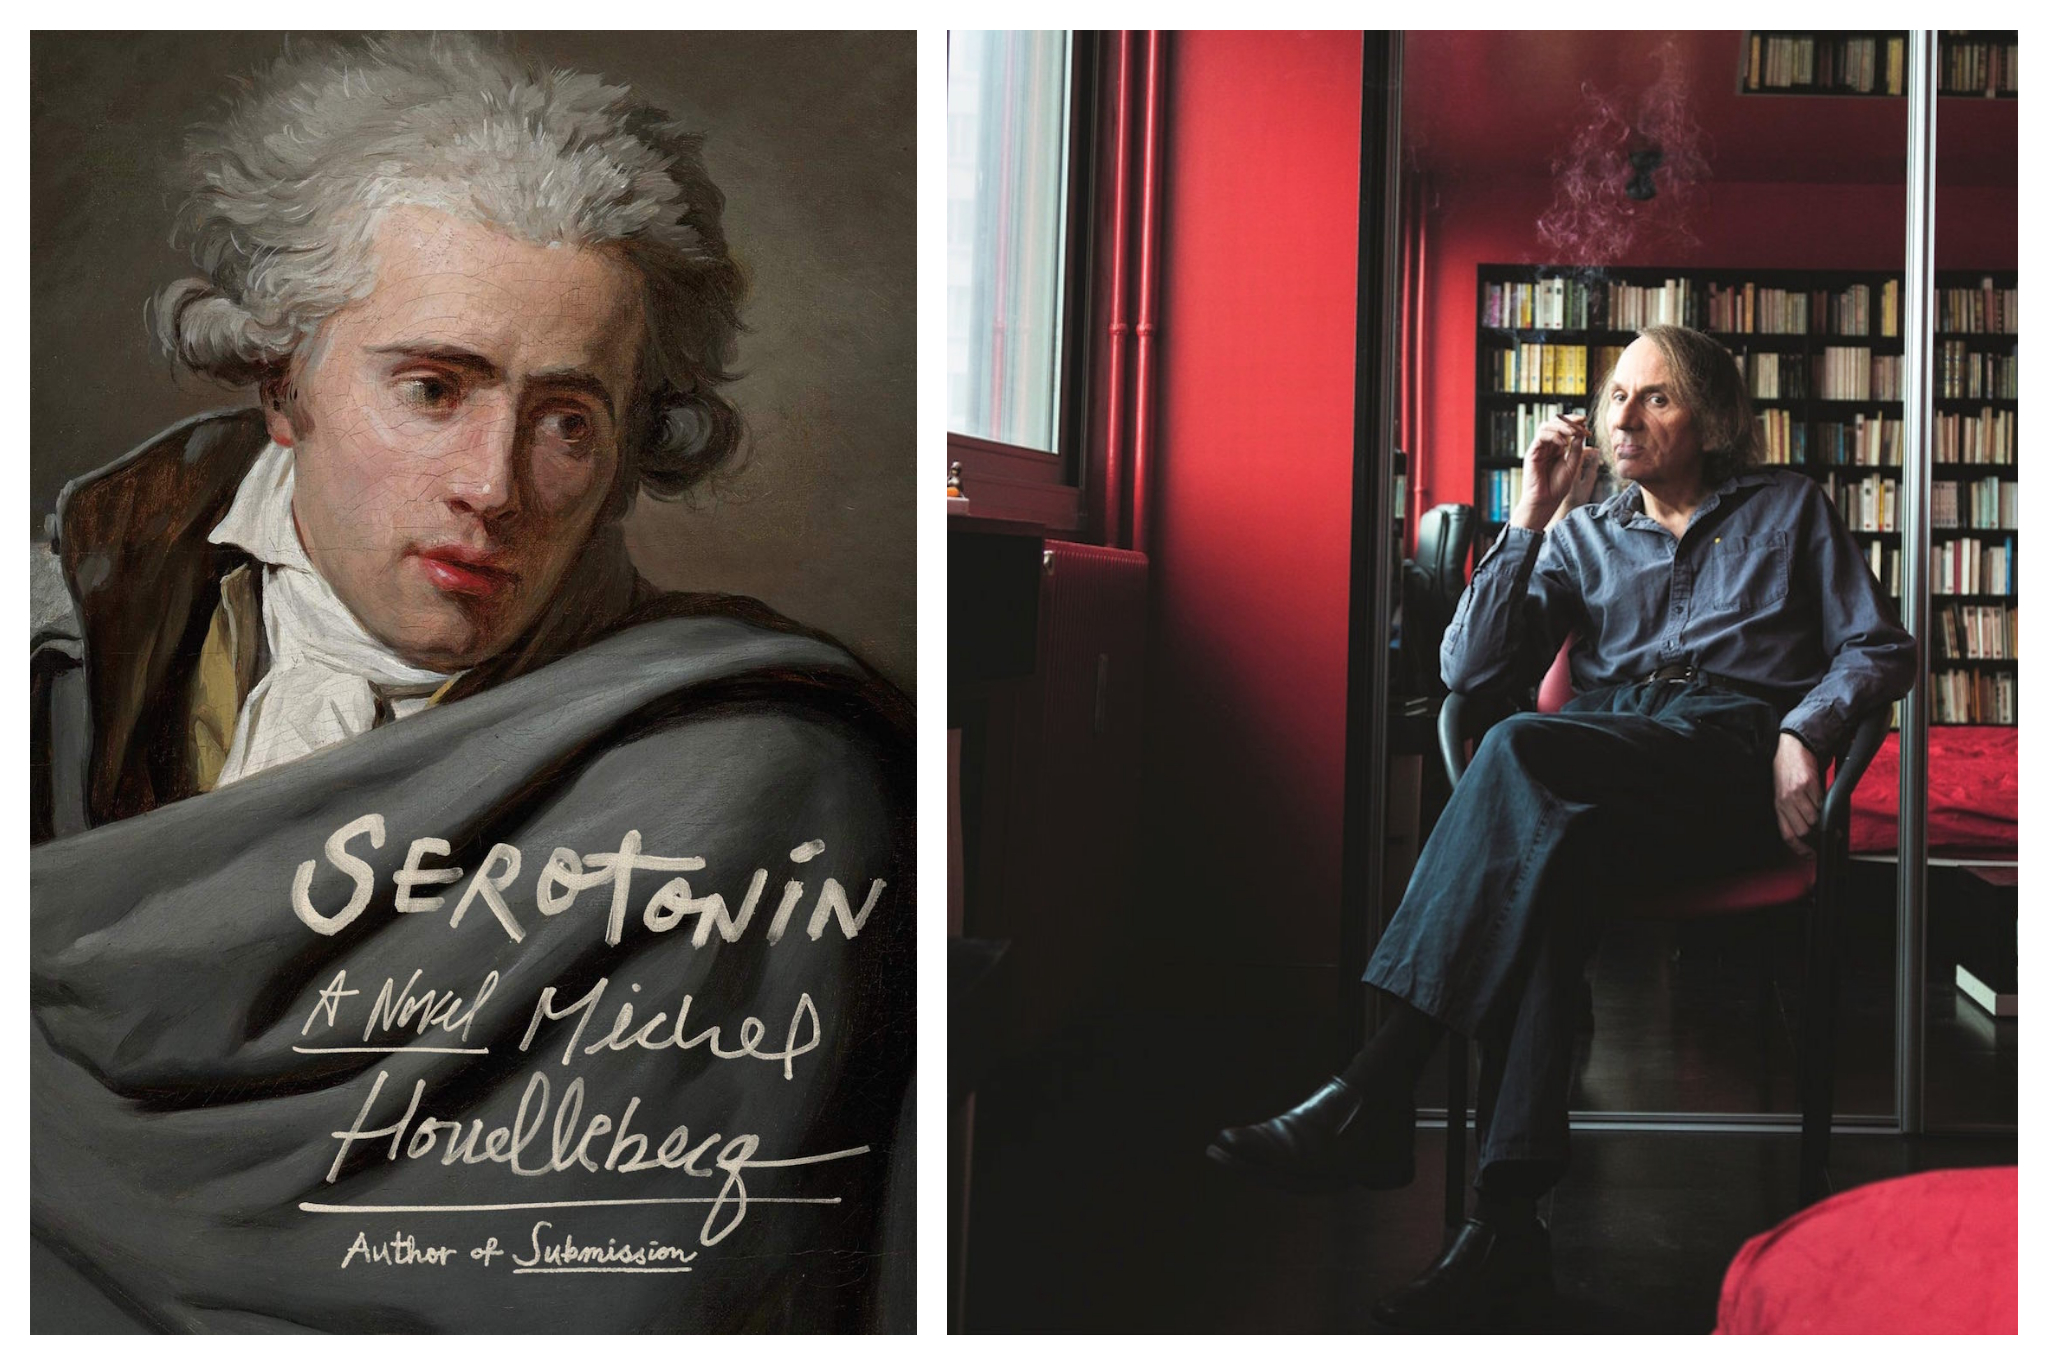 """Left: The cover of Michel Houllebecq's book """"Serotonin,"""" which shows an old painting of a man, Right: Michel Houllebecq, wearing dark clothes, smokes a cigarette while sitting in a chair inside a red room. Behind him is a mirror which reflects  a shelf filled with books."""